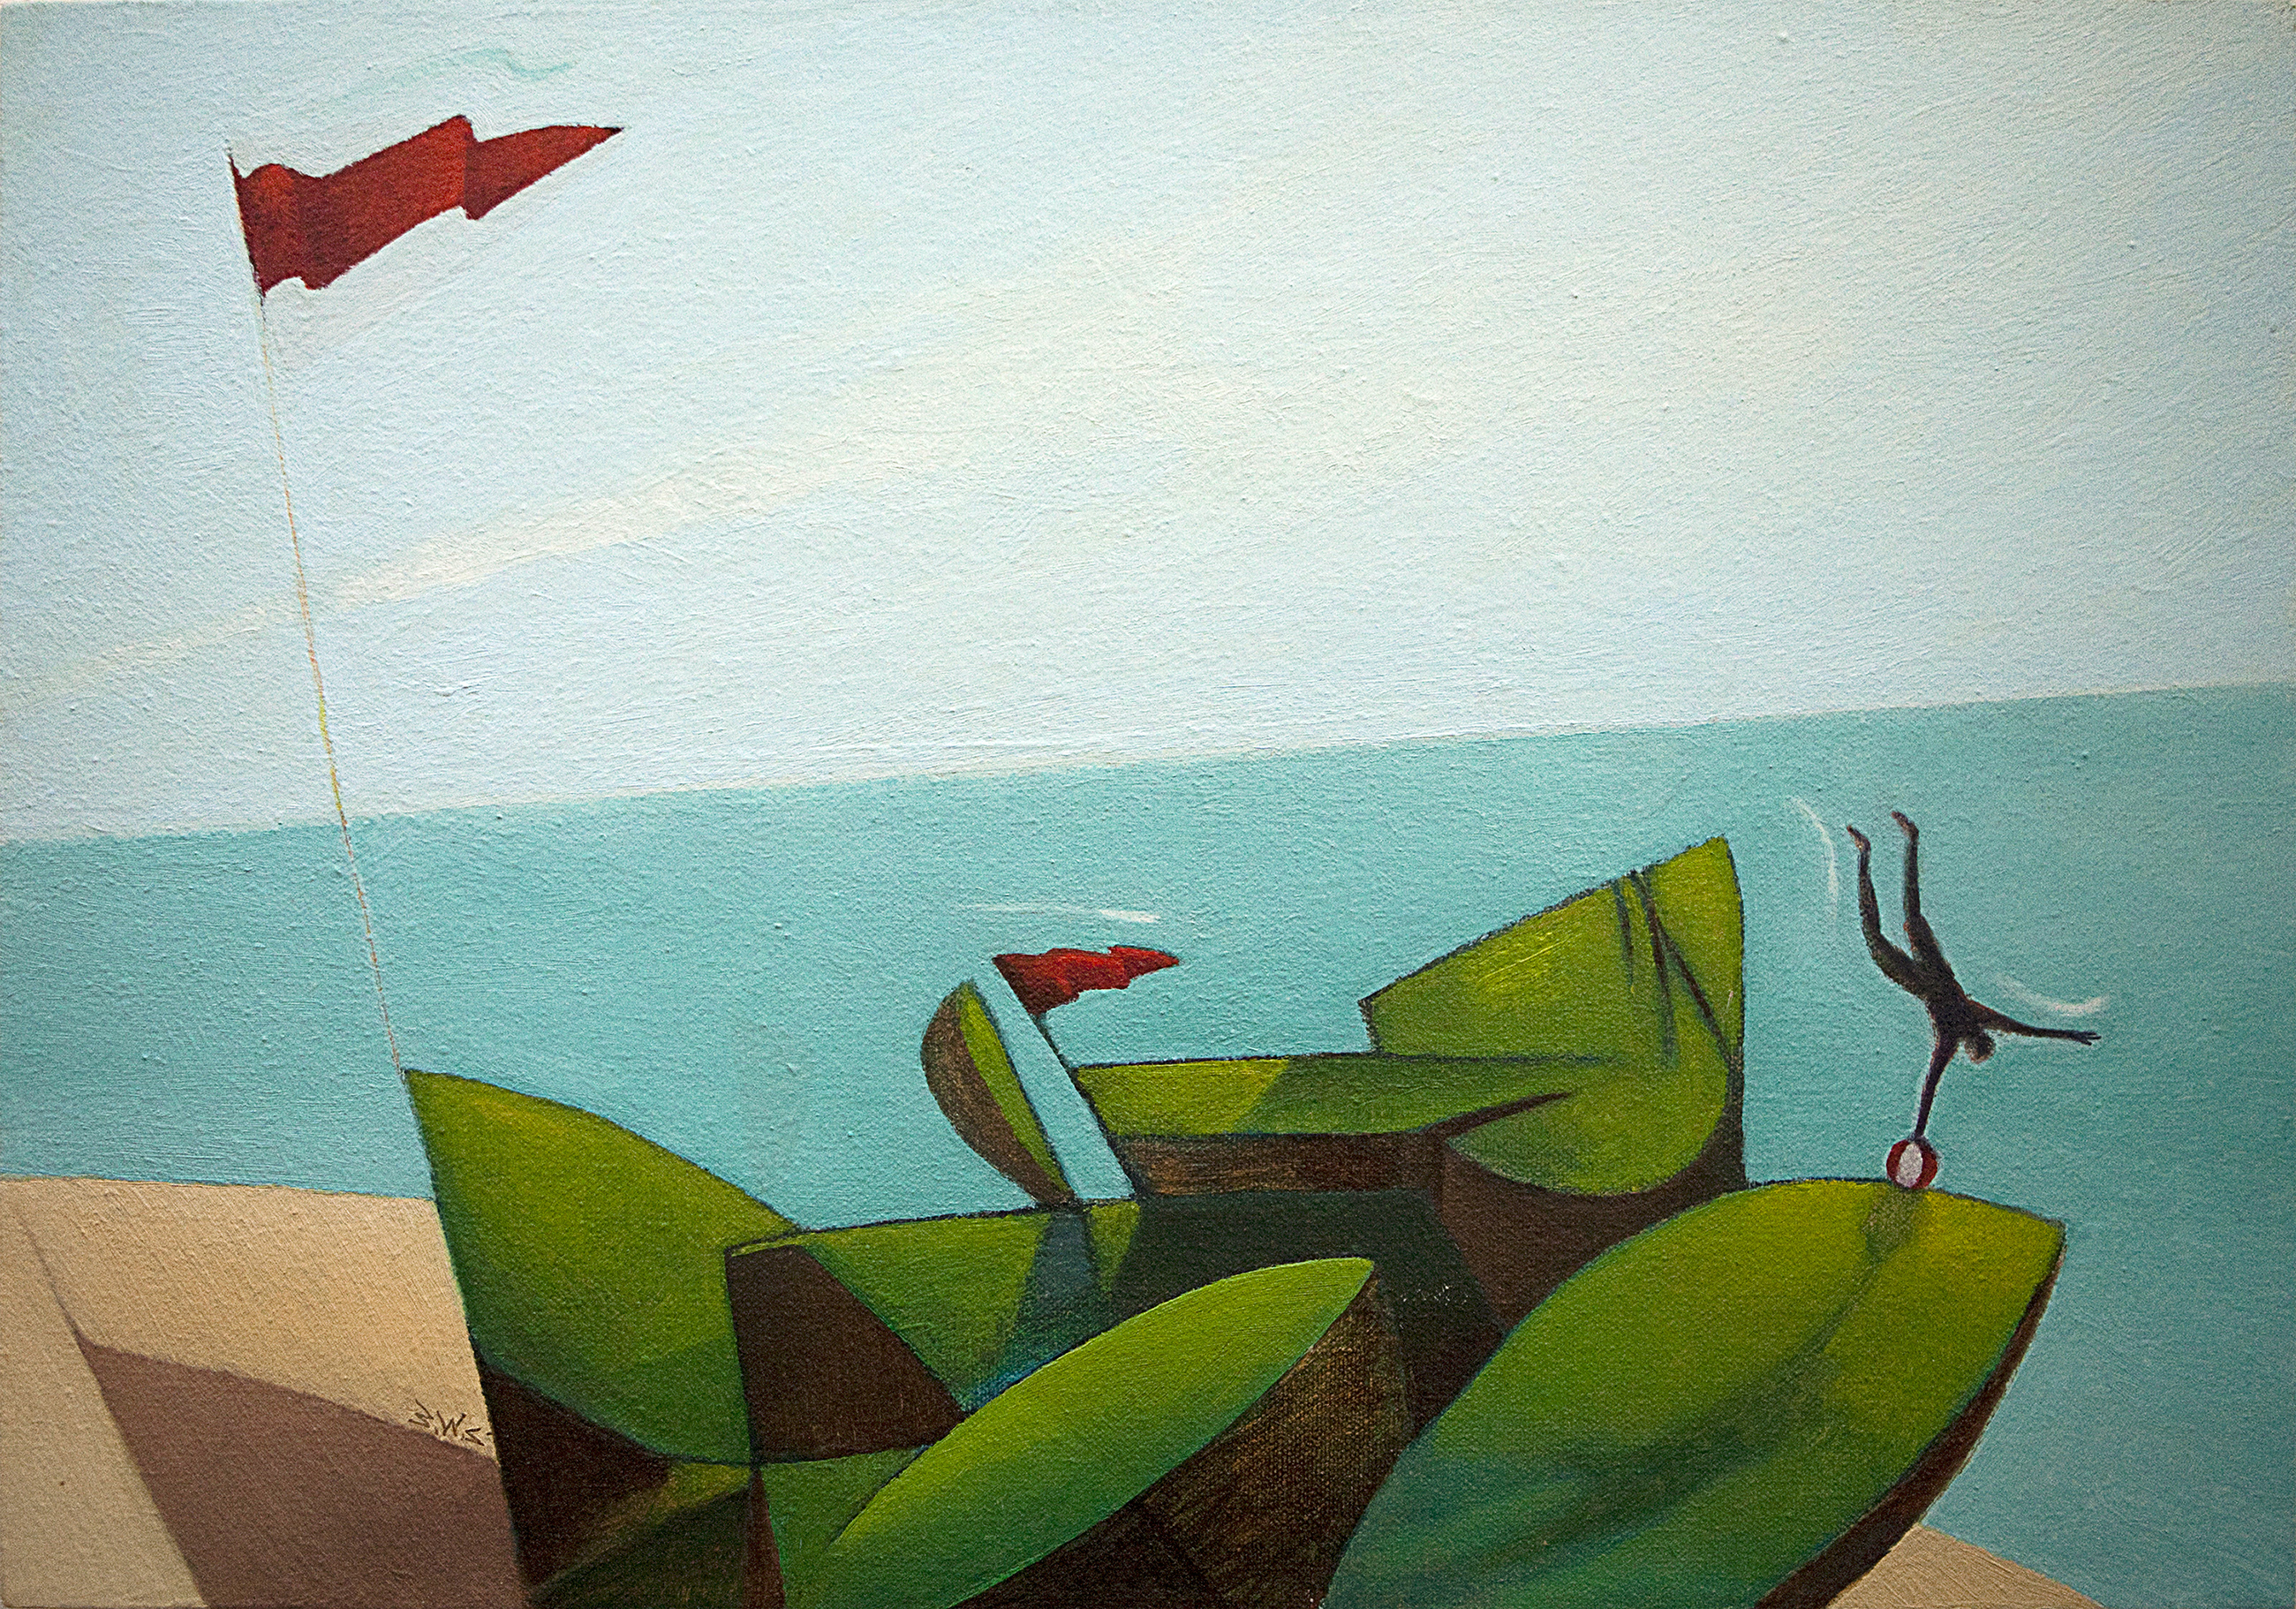 Beach Day artwork by Barry Scharf - art listed for sale on Artplode